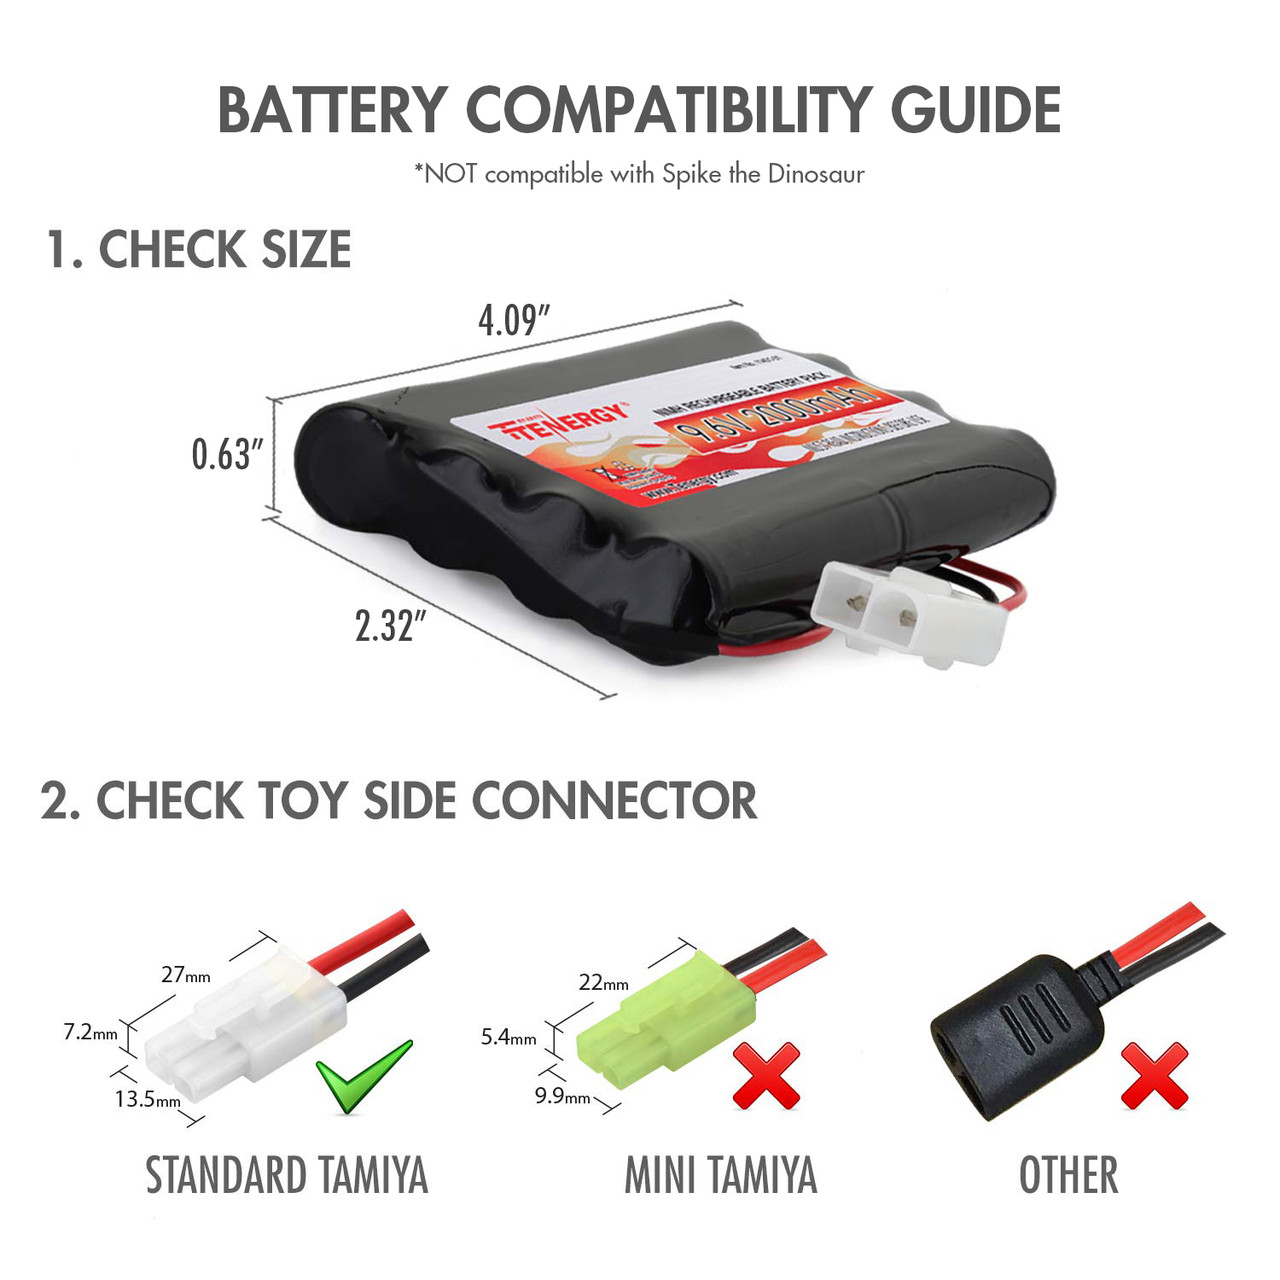 Combo: Tenergy NiMH 9.6V 2000mAh Flat Battery Pack, 2-pack + Charger (#01009), for RC and Airsoft